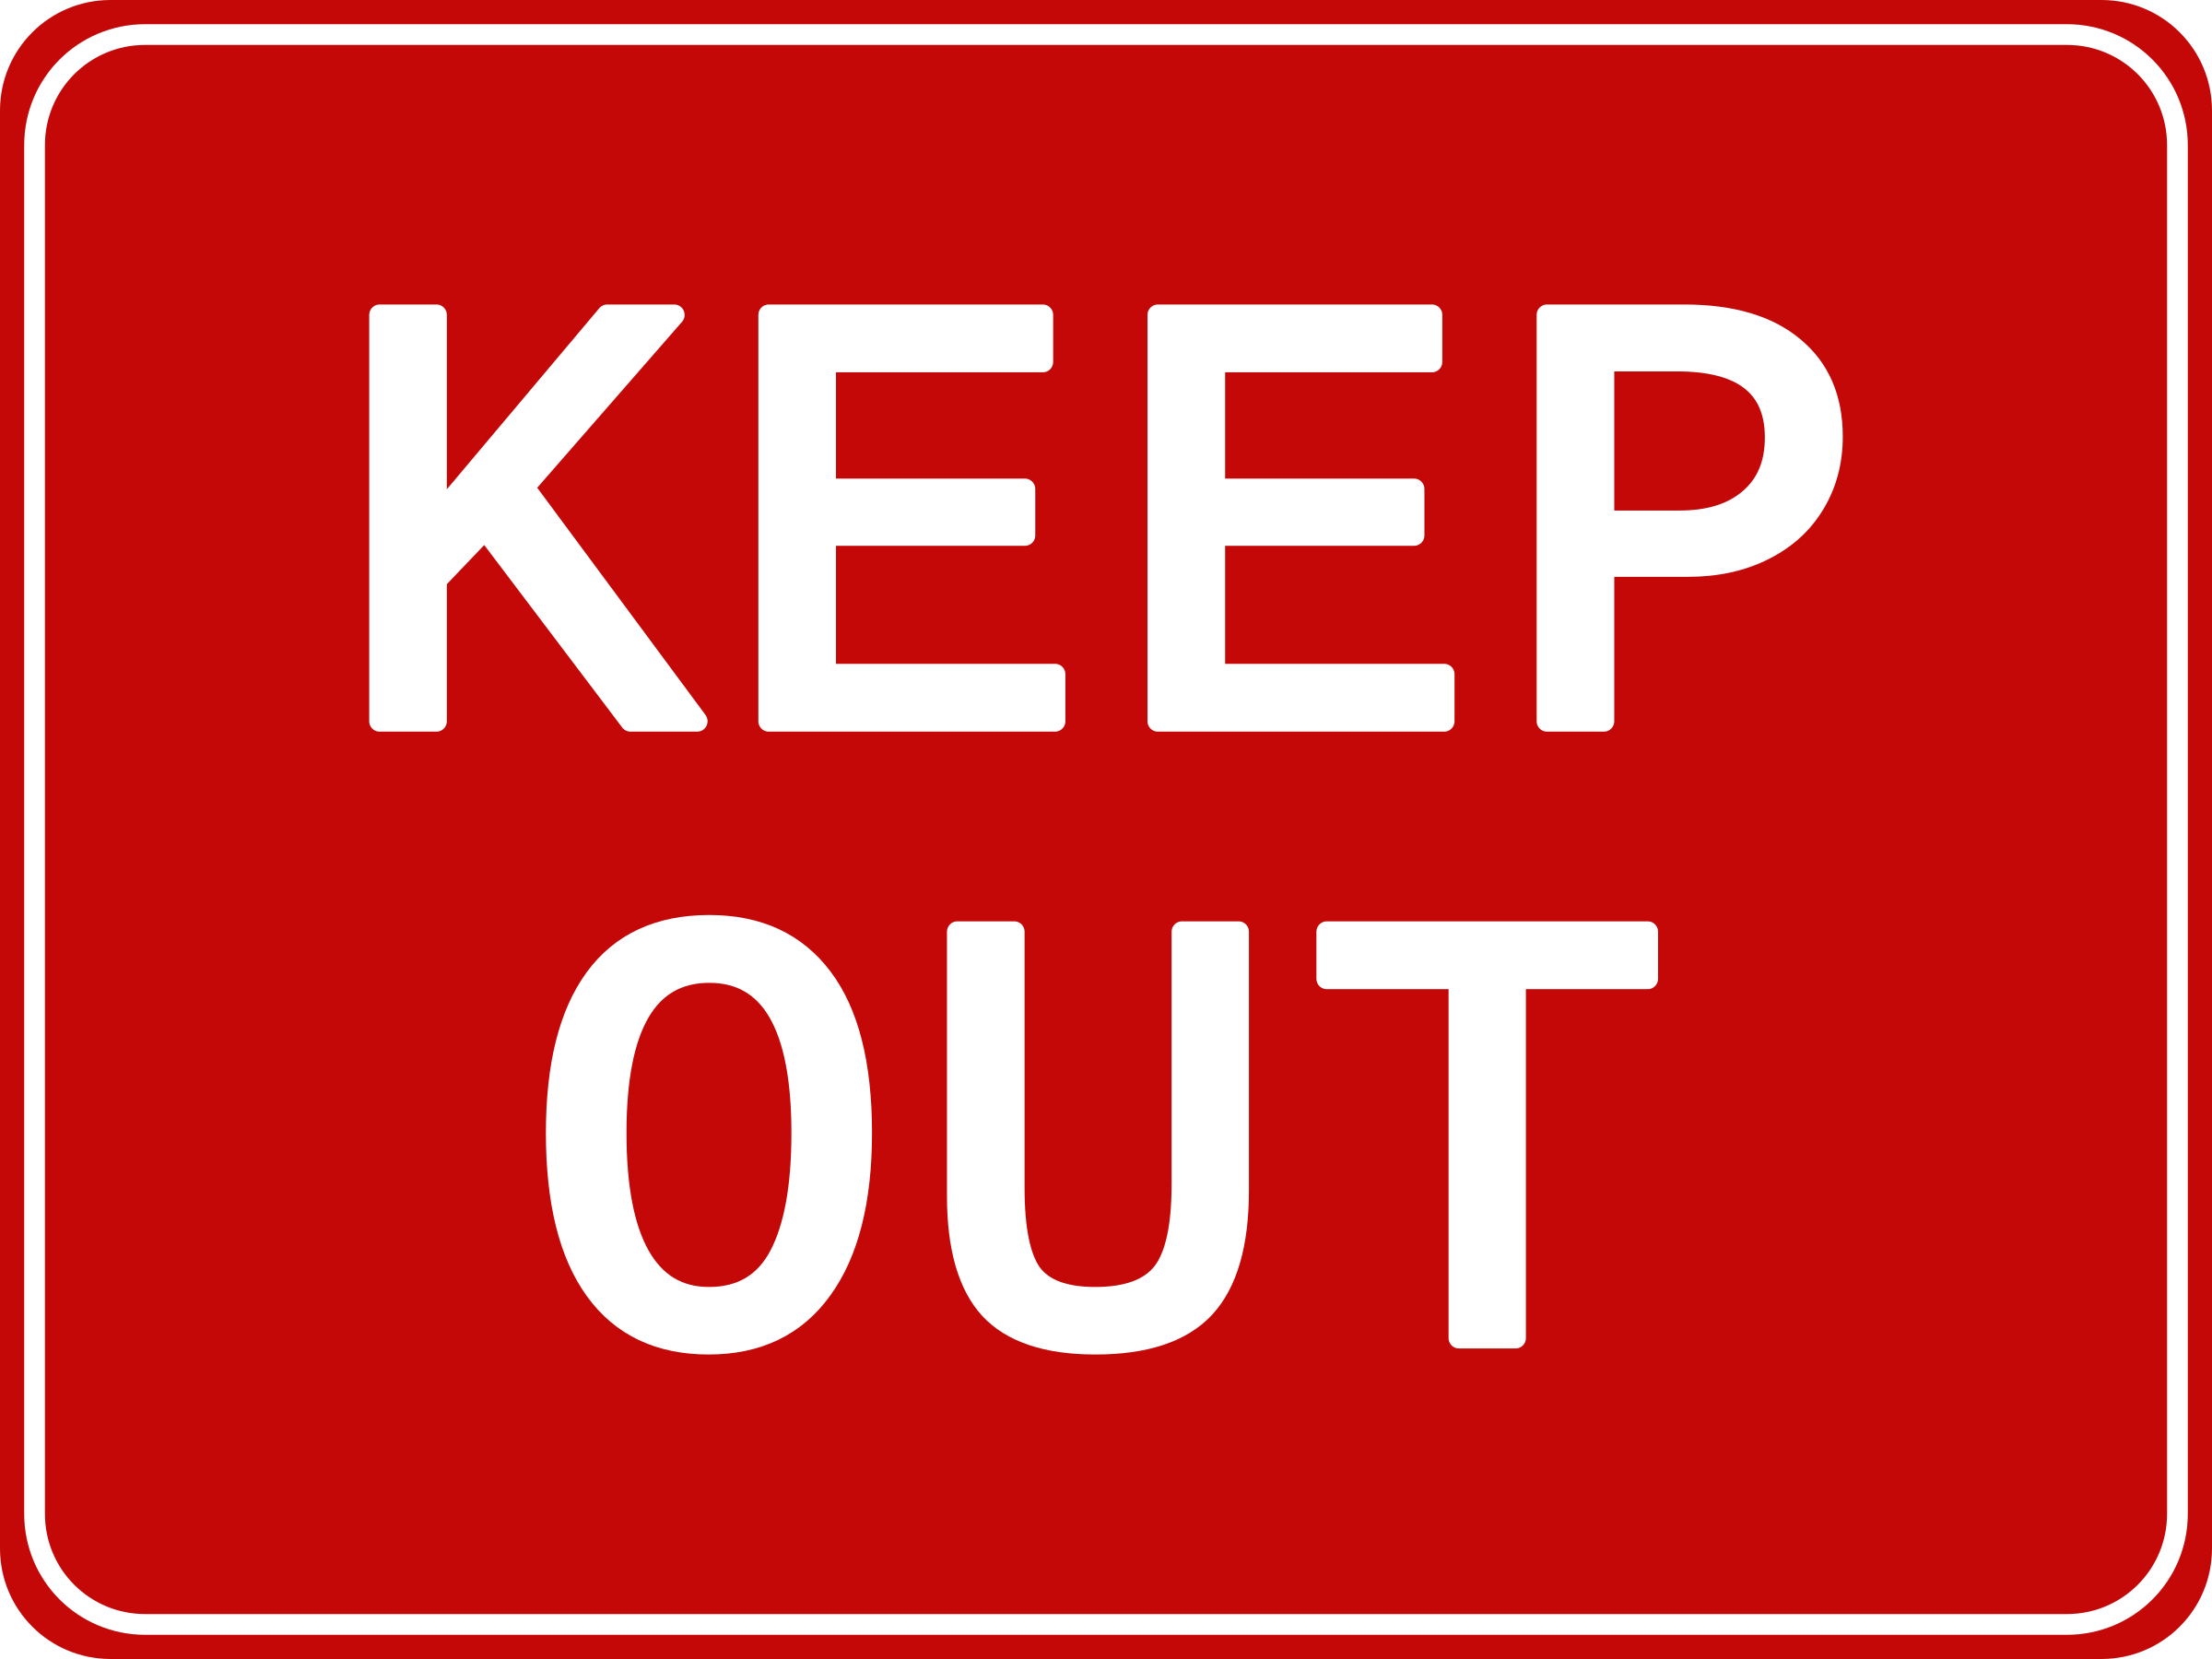 Keep Out Sign by qubodup